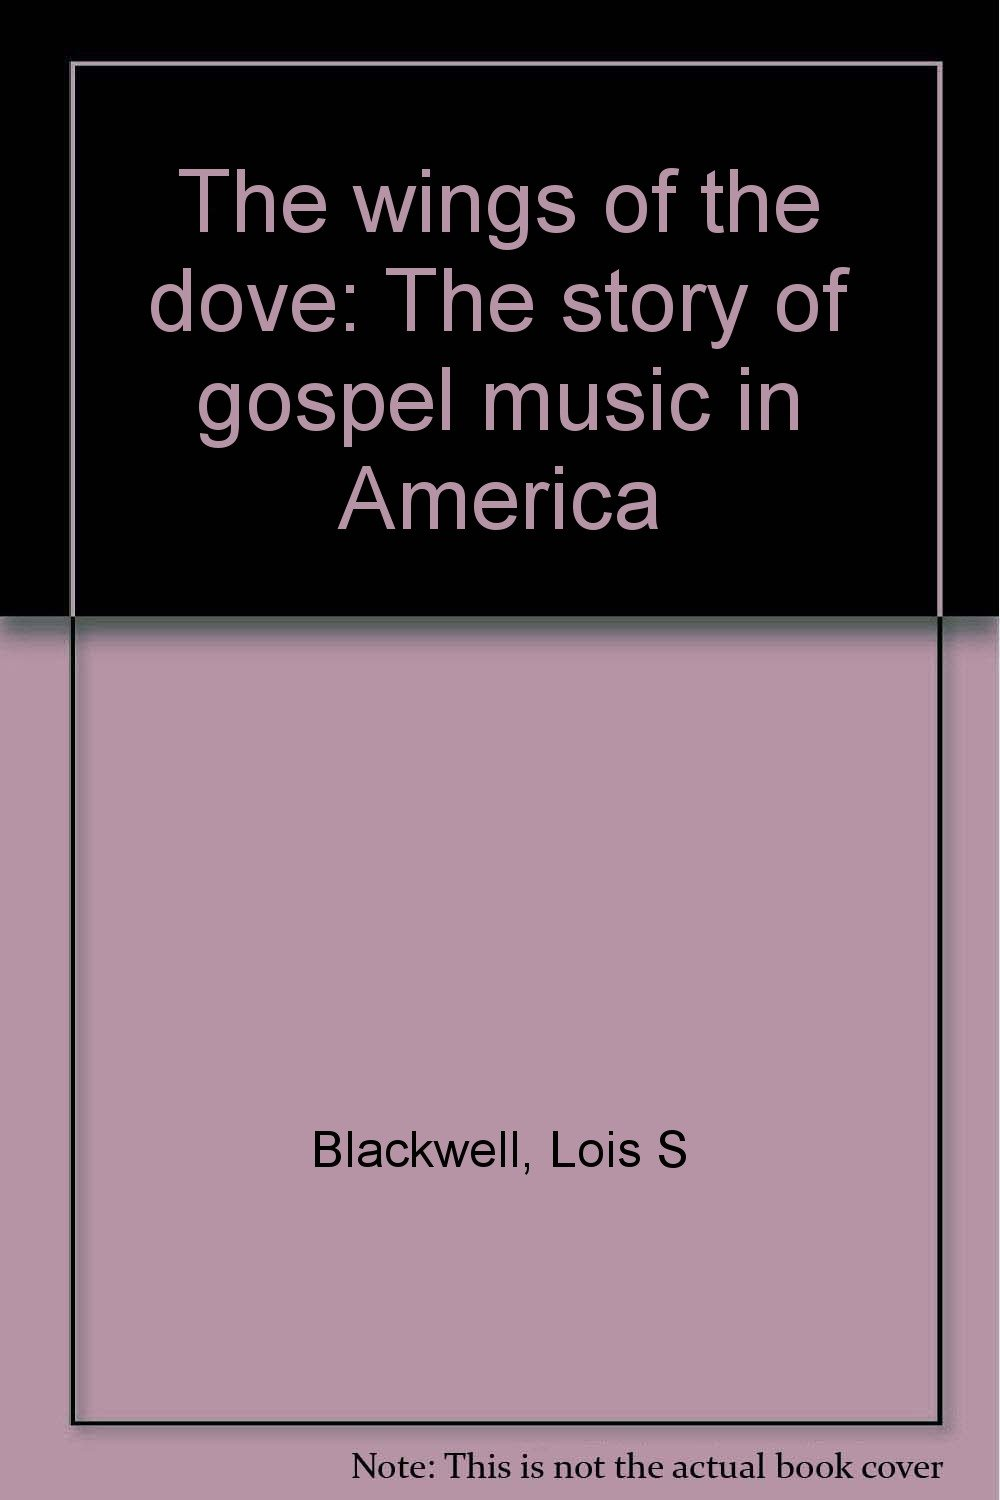 The wings of the dove: The story of gospel music in America